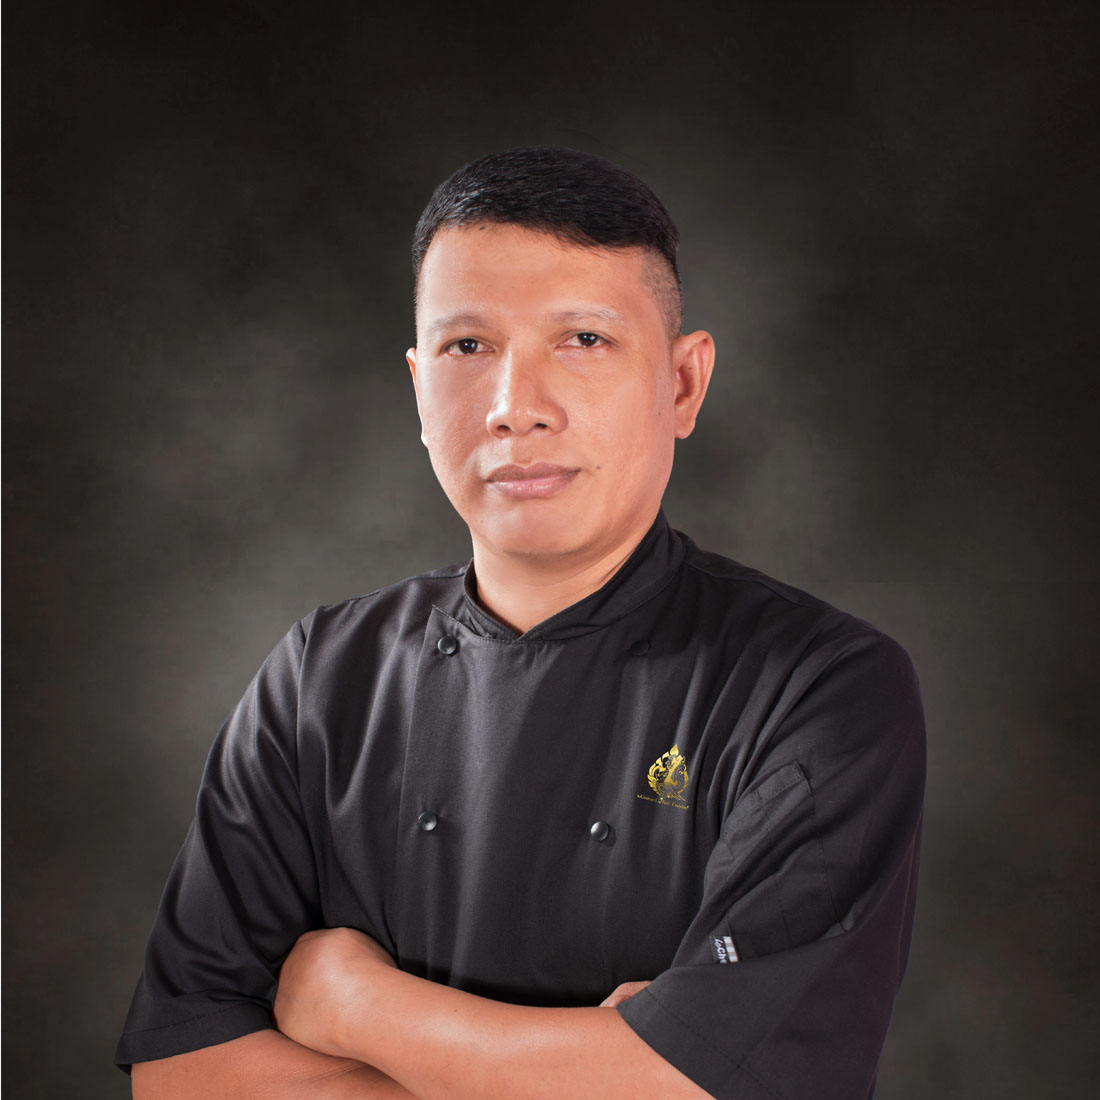 Chef Oh